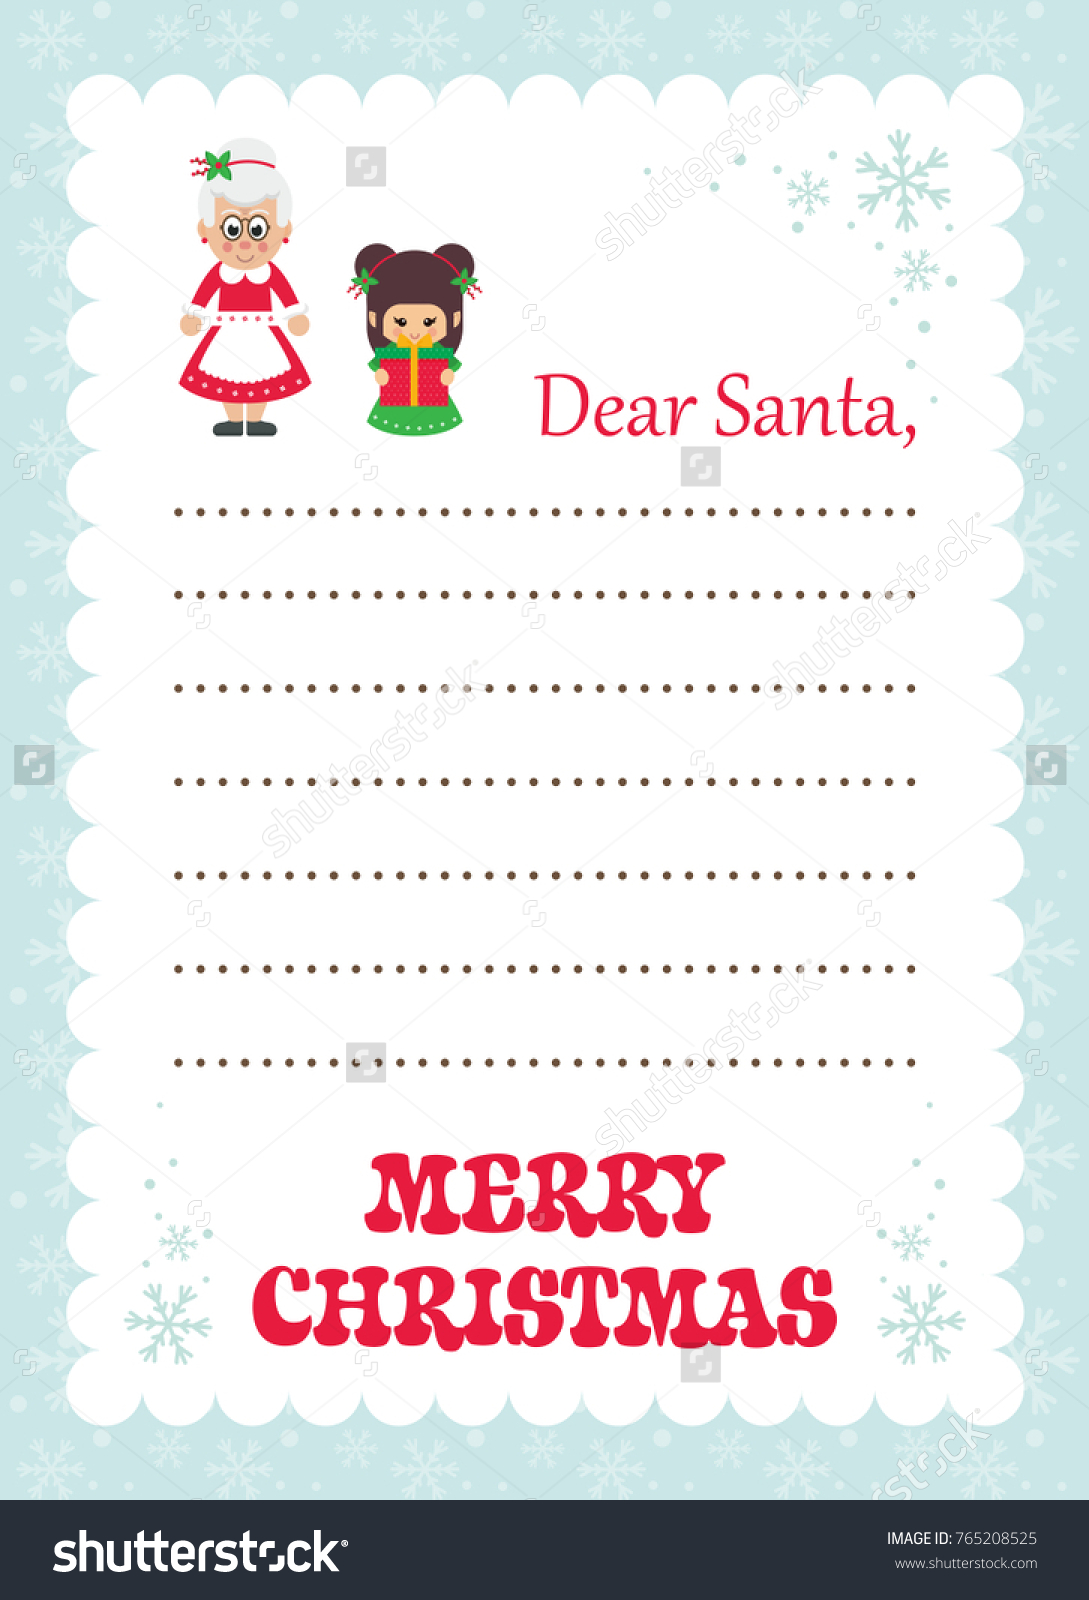 Cartoon letter santa mrs santa christmas stock vector 765208525 cartoon letter to santa mrs santa and christmas elf with gift spiritdancerdesigns